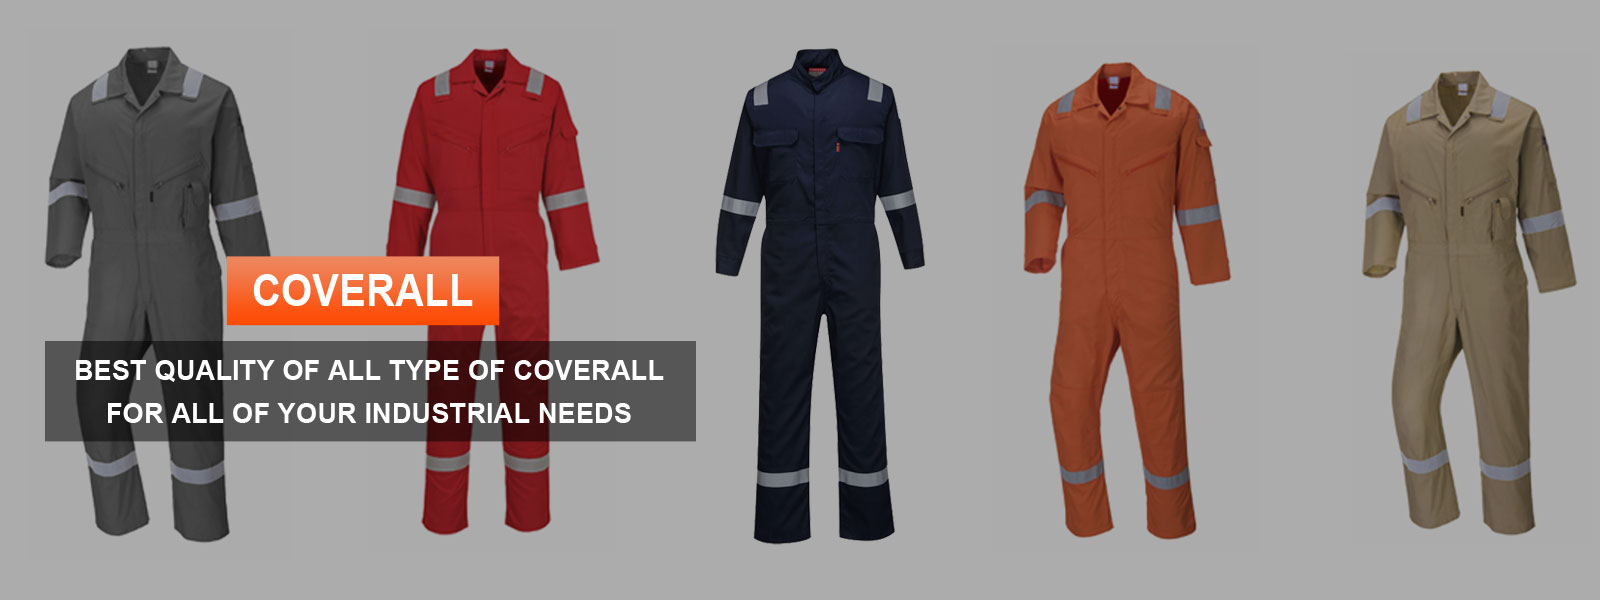 Coverall Manufacturers in Jordan